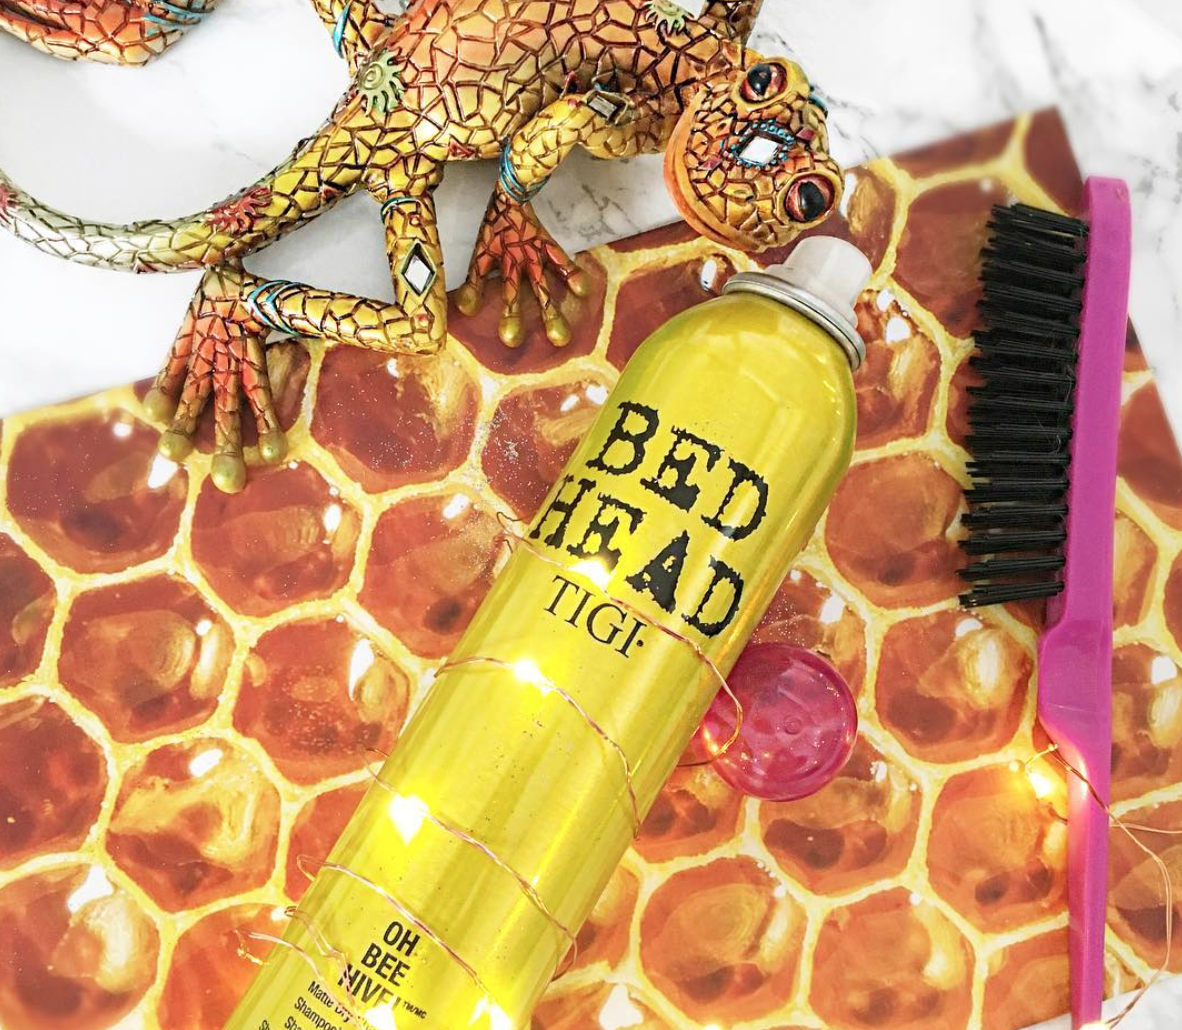 Tigi Bed Head Oh Bee Hive Matte Dry Shampoo Review Across This Page